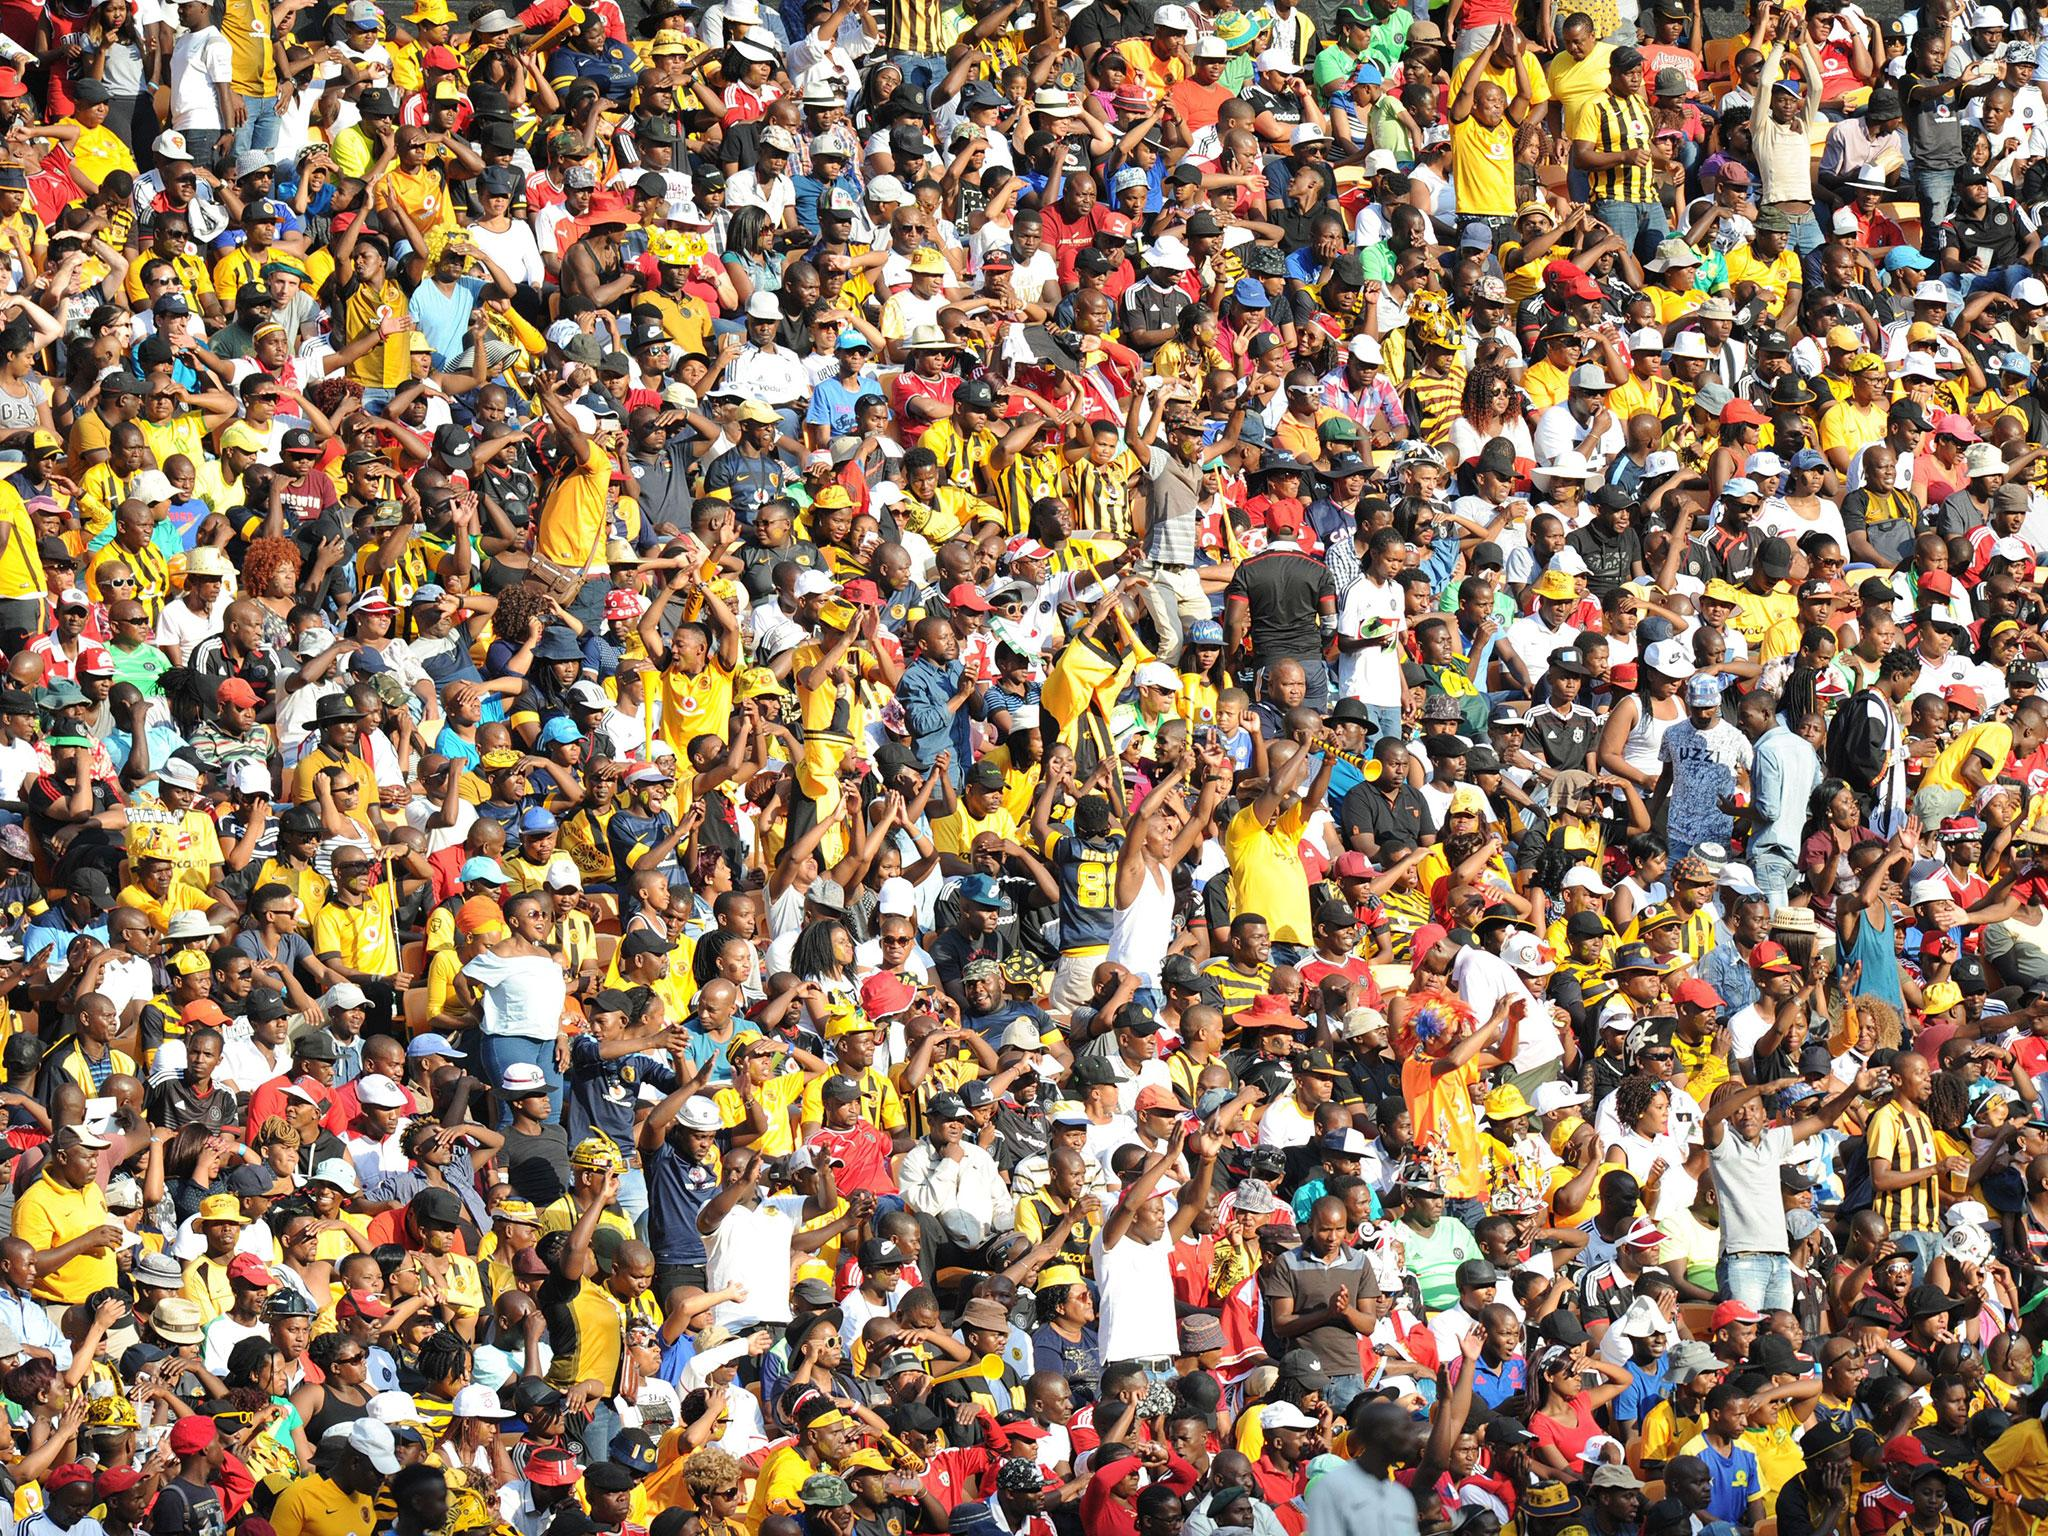 Two fans killed and several injured in fan crush in South Africa